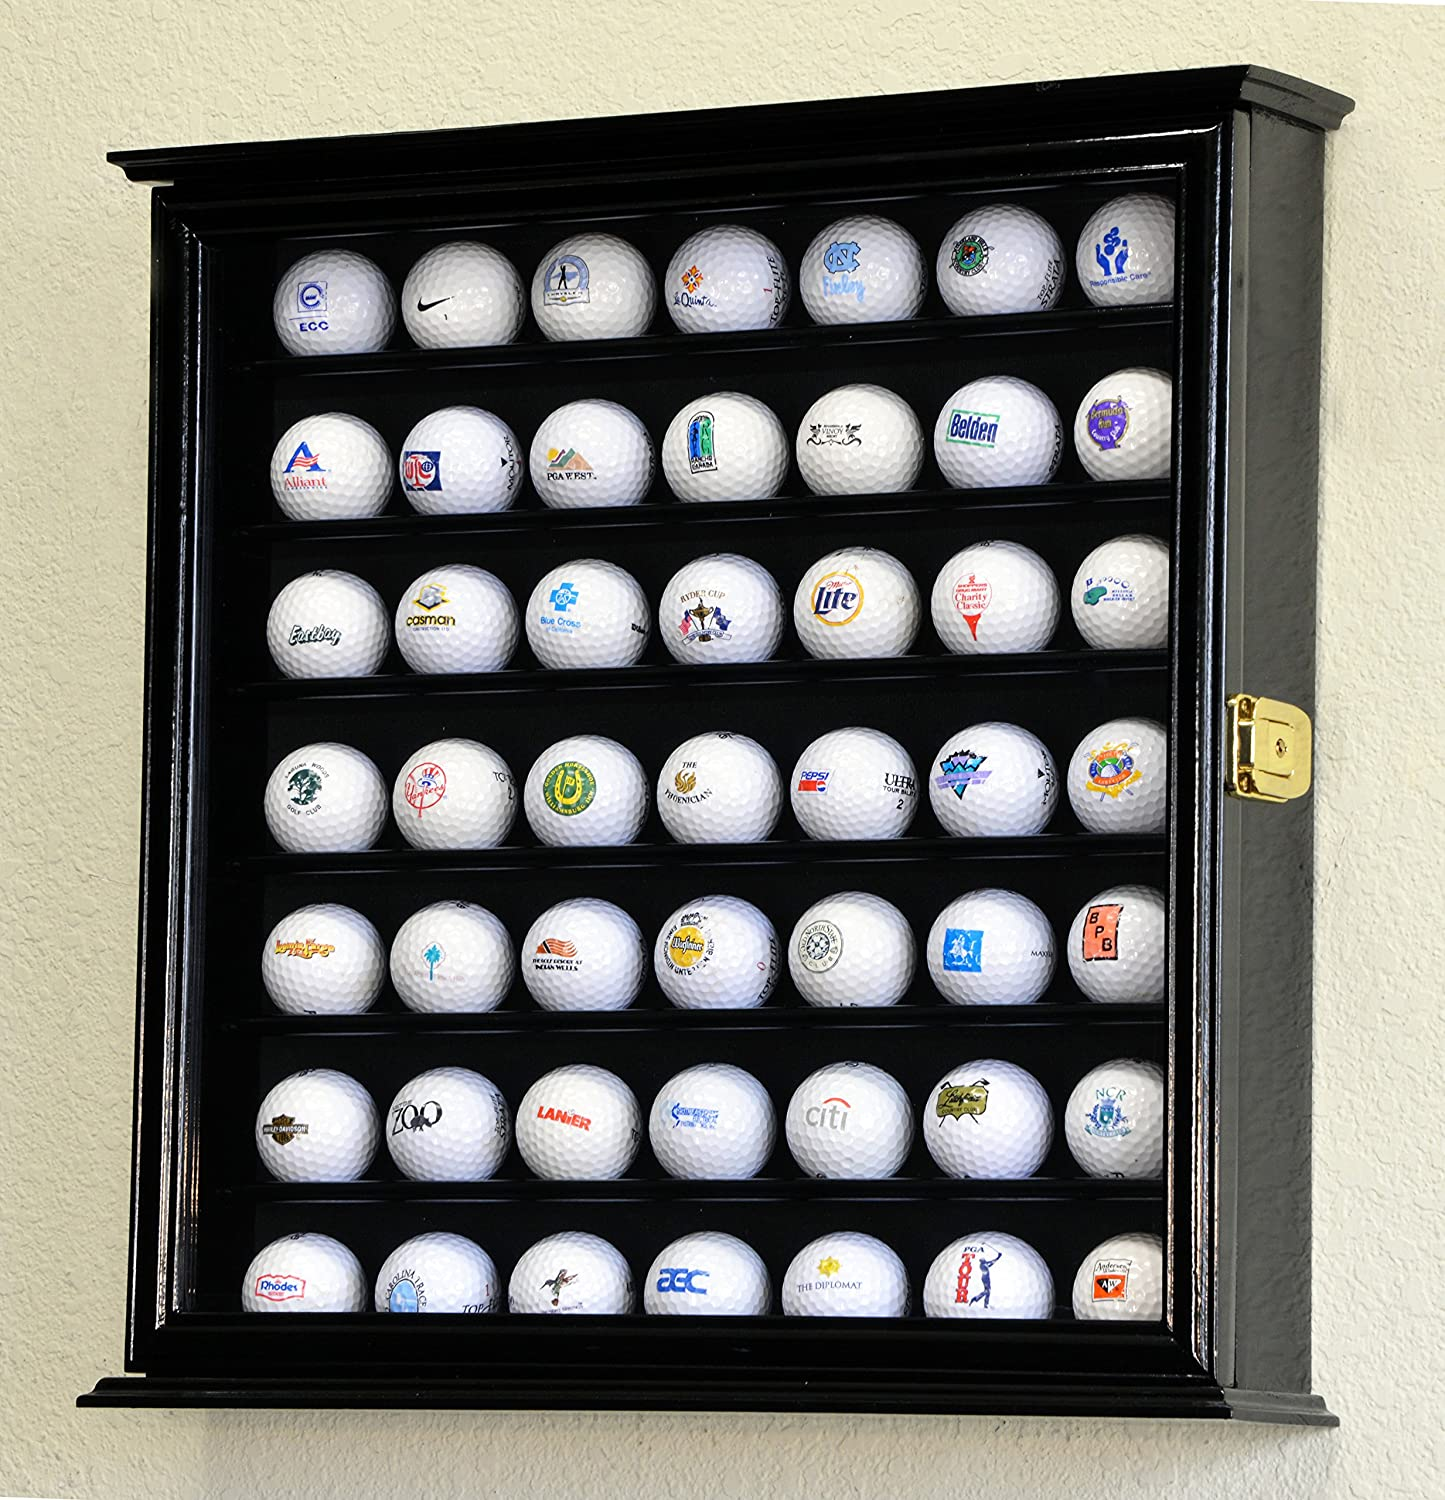 Charmant Amazon.com : 49 Golf Ball Display Case Cabinet Wall Rack Holder W/98% UV  Protection Lockable  Black : Sports Related Display Cases : Sports U0026  Outdoors